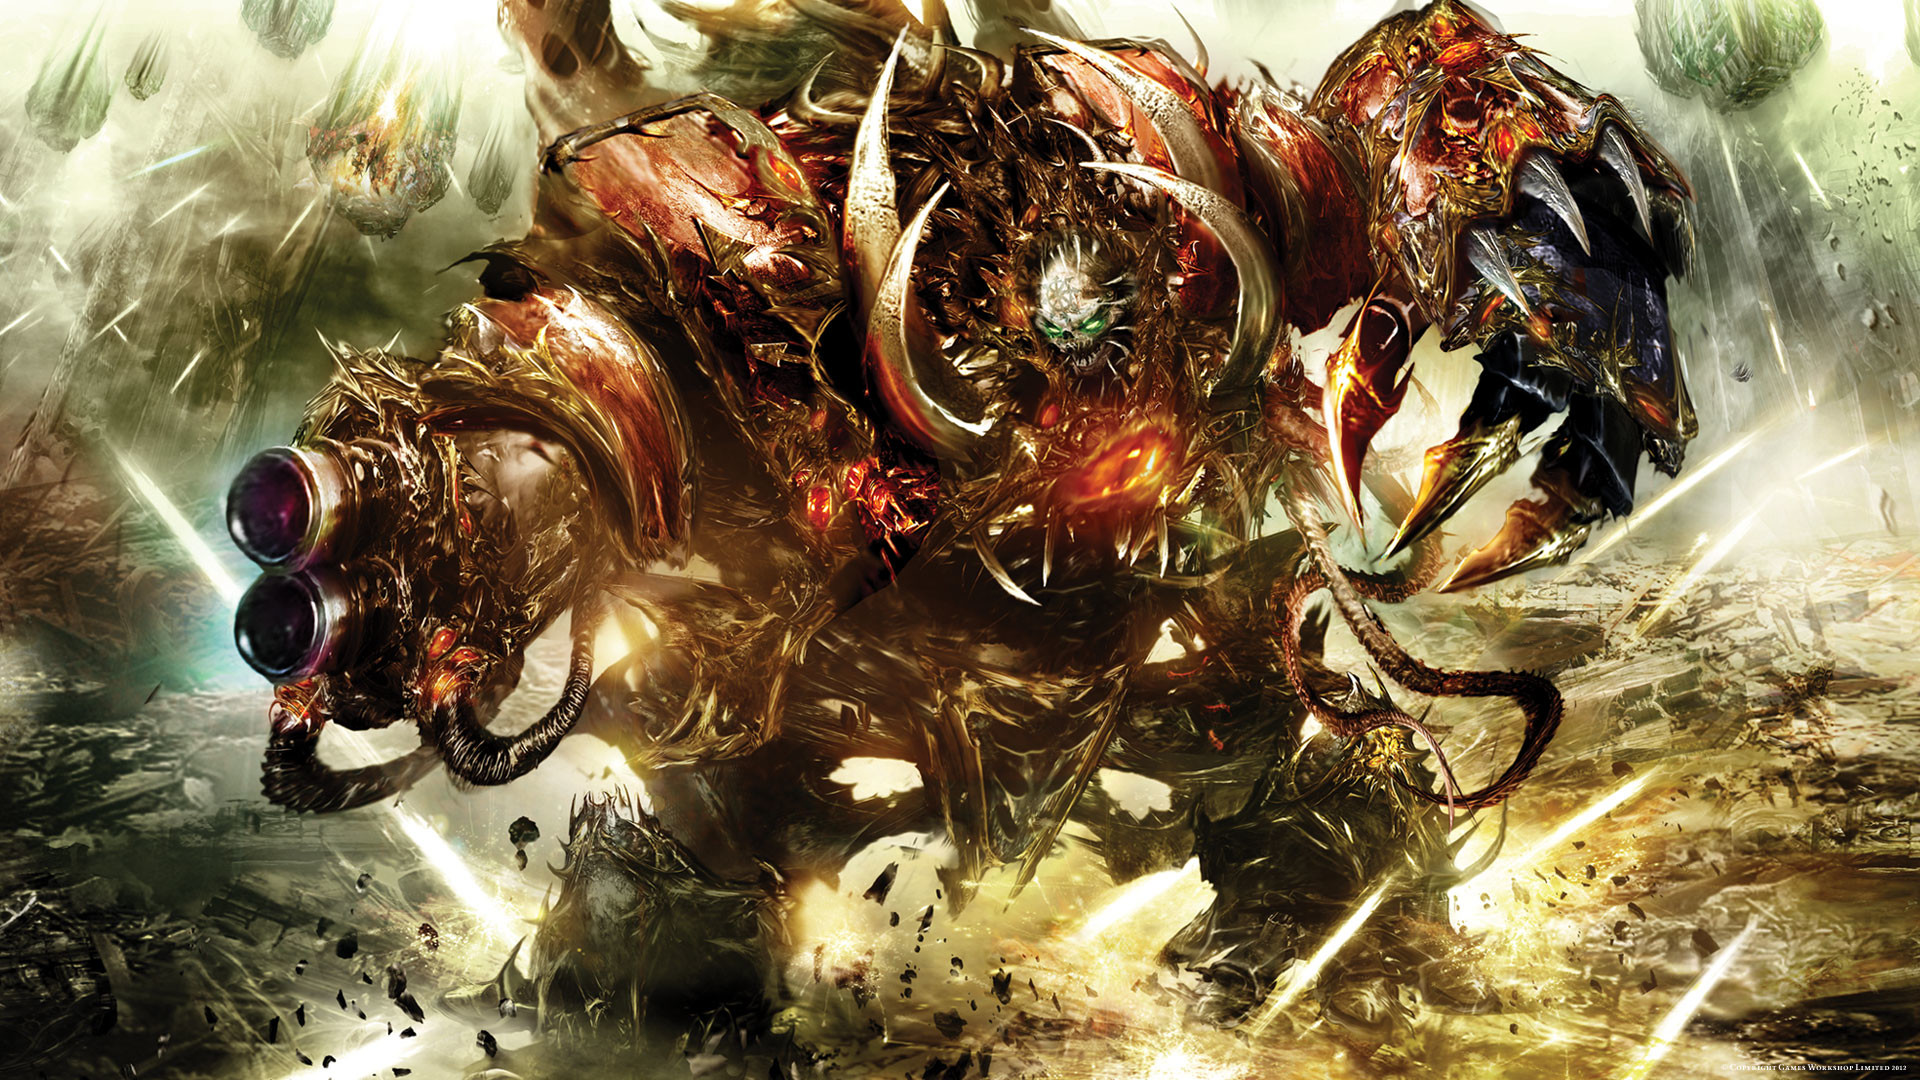 Wallpaper Abyss Explore the Collection Warhammer Video Game Warhammer .